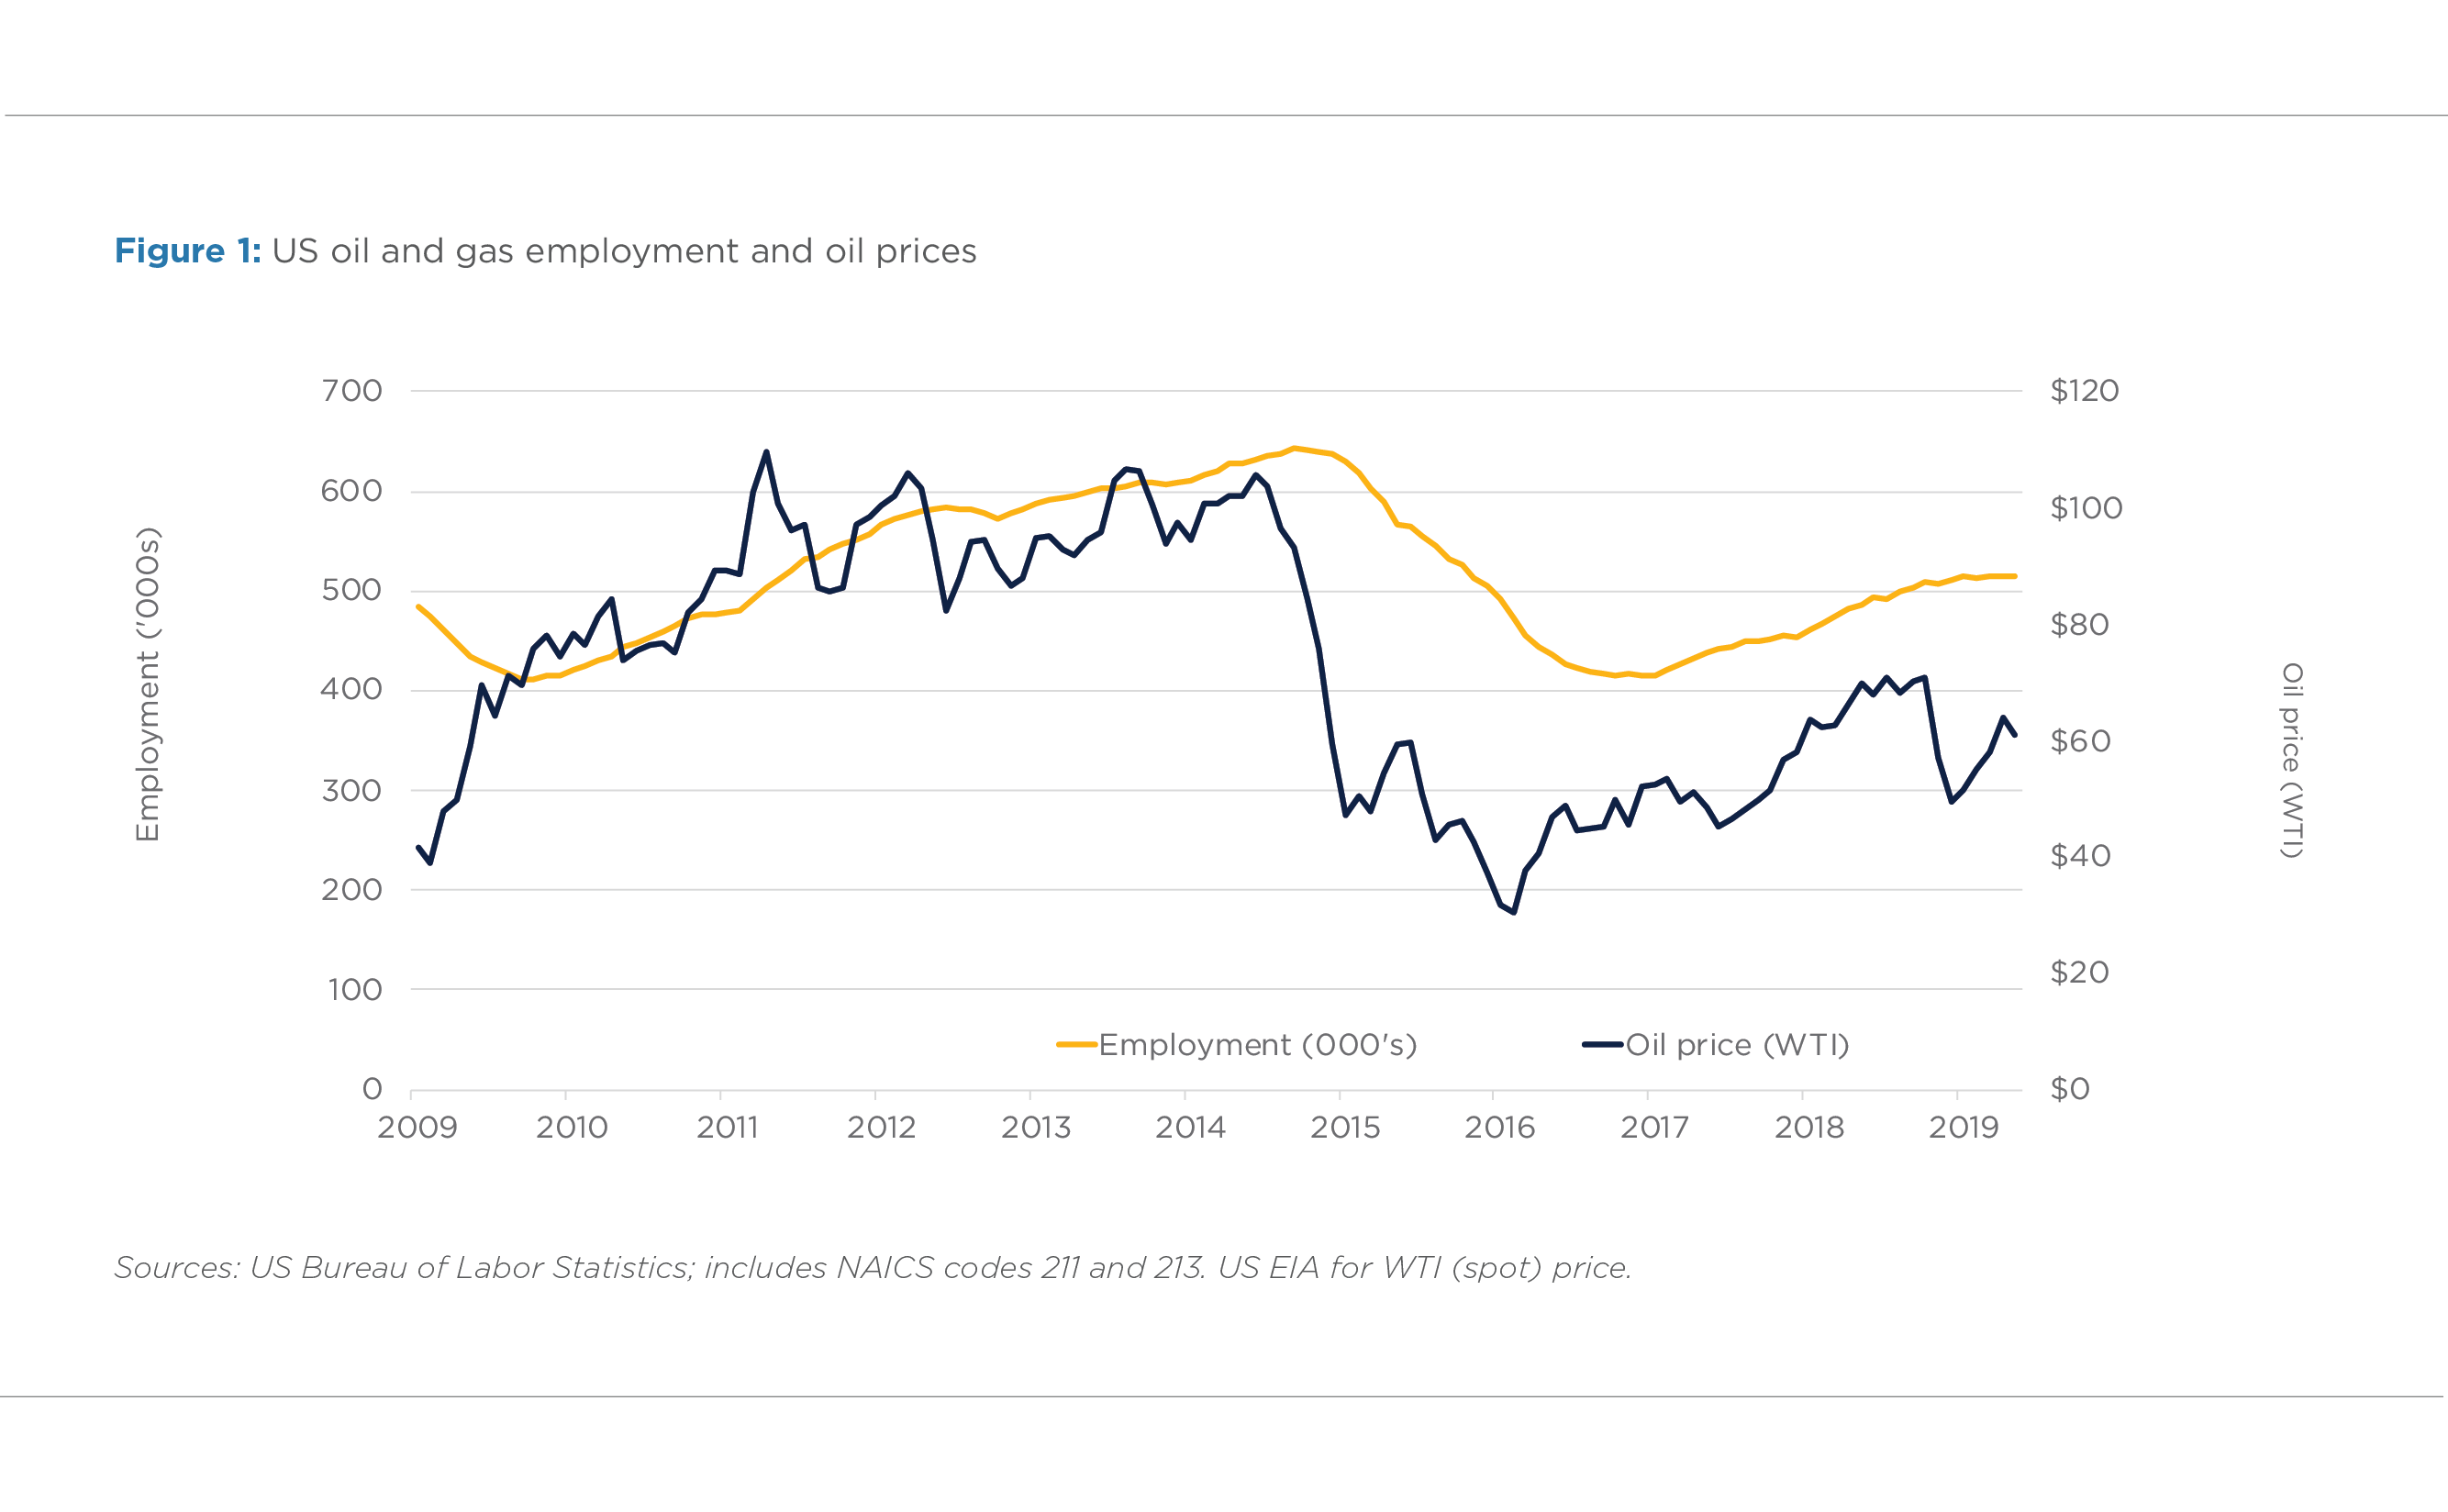 FIGURE 1. US OIL AND GAS EMPLOYMENT AND OIL PRICES